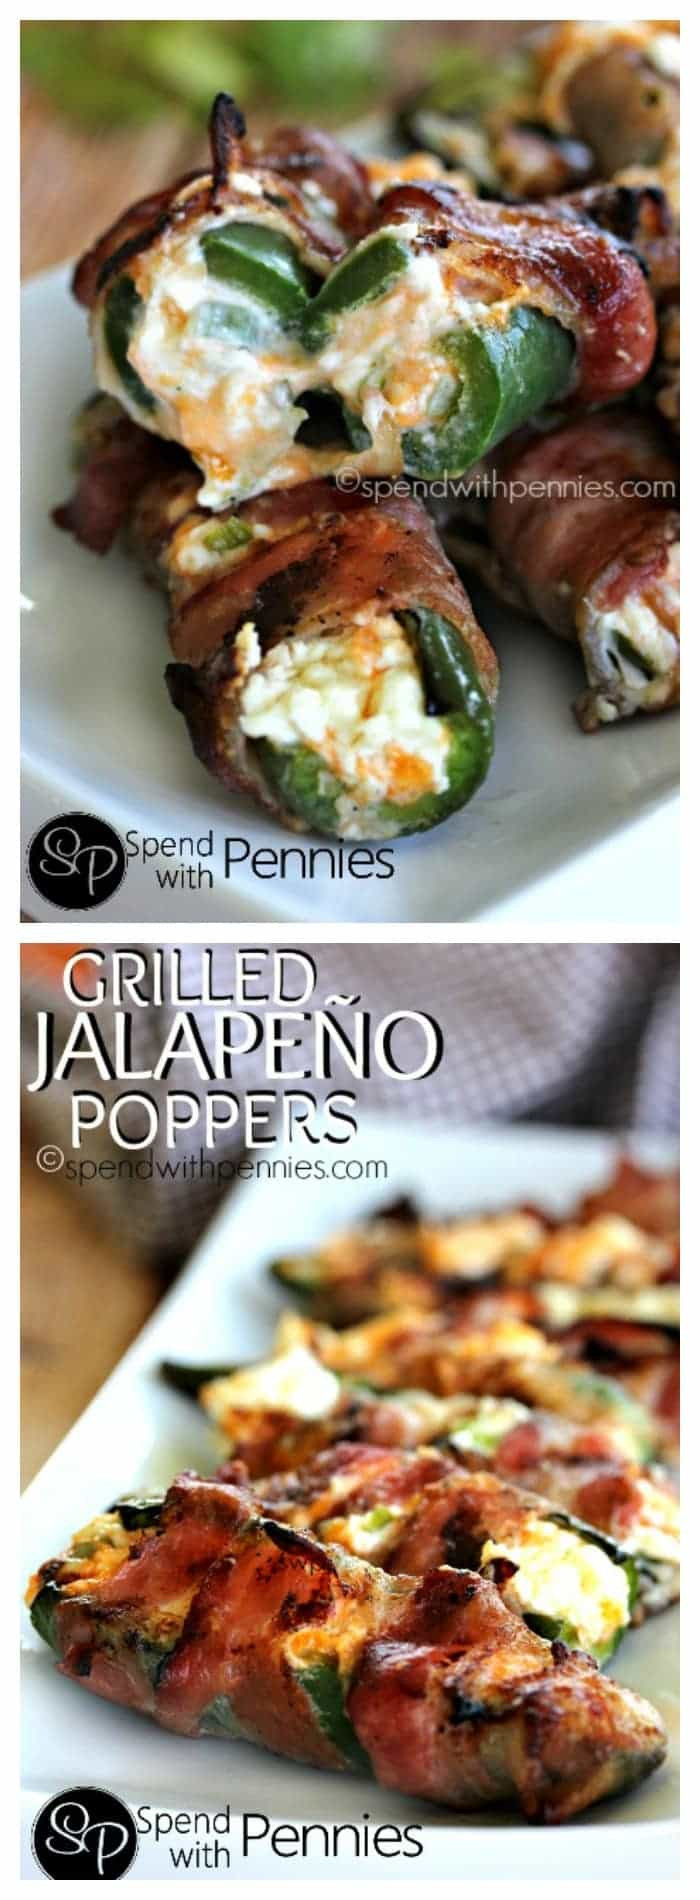 Jalapeno Poppers Grilled  Bacon Wrapped Jalapeno Poppers Spend With Pennies